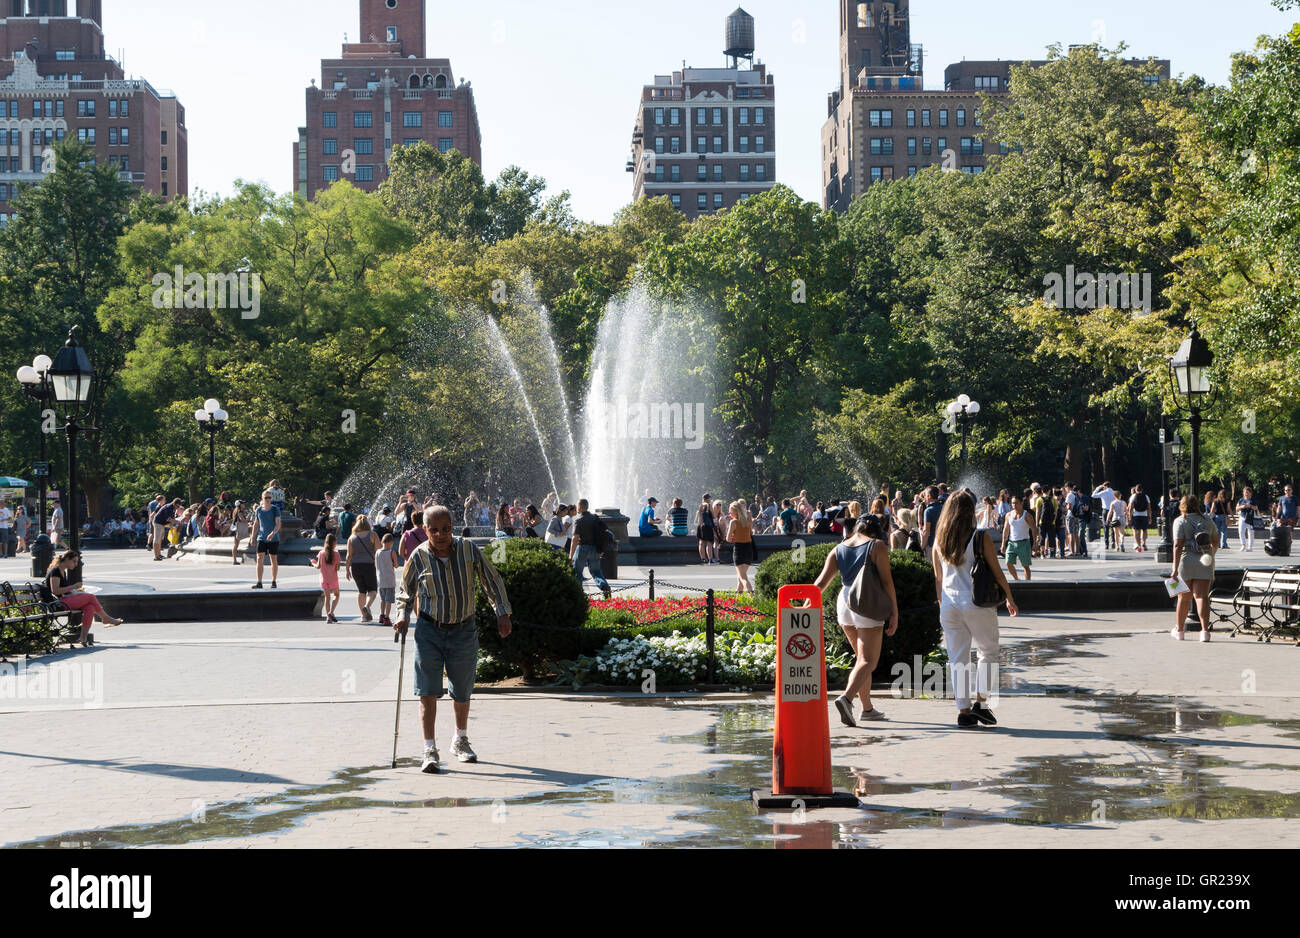 Washington Square Park in Summer with people enjoying hot weather around the water fountain. - Stock Image